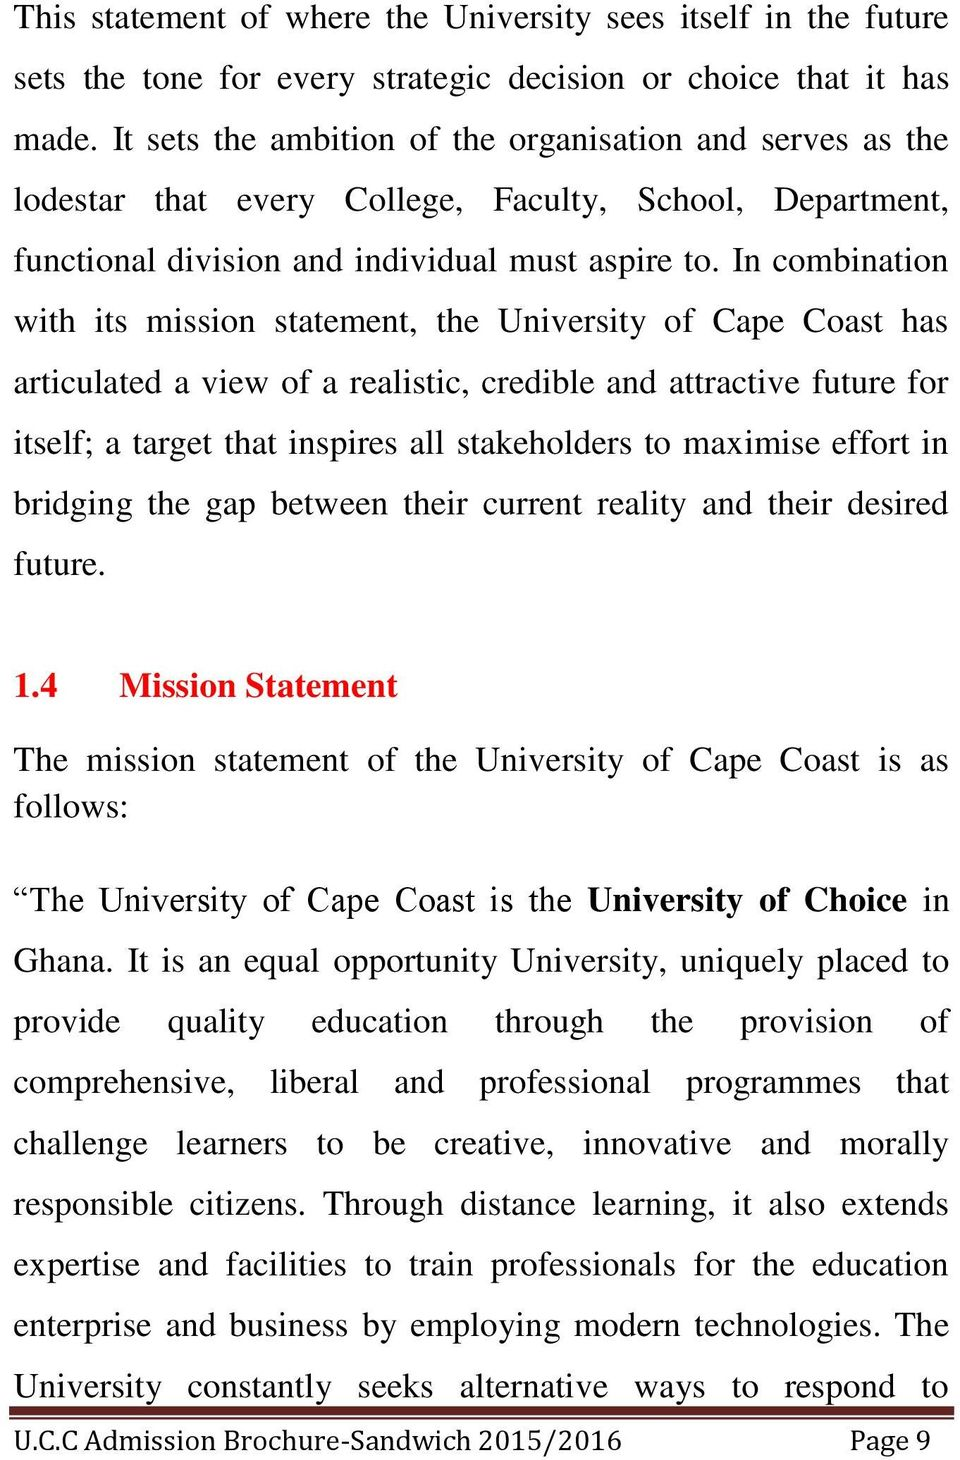 In combination with its mission statement, the University of Cape Coast has articulated a view of a realistic, credible and attractive future for itself; a target that inspires all stakeholders to